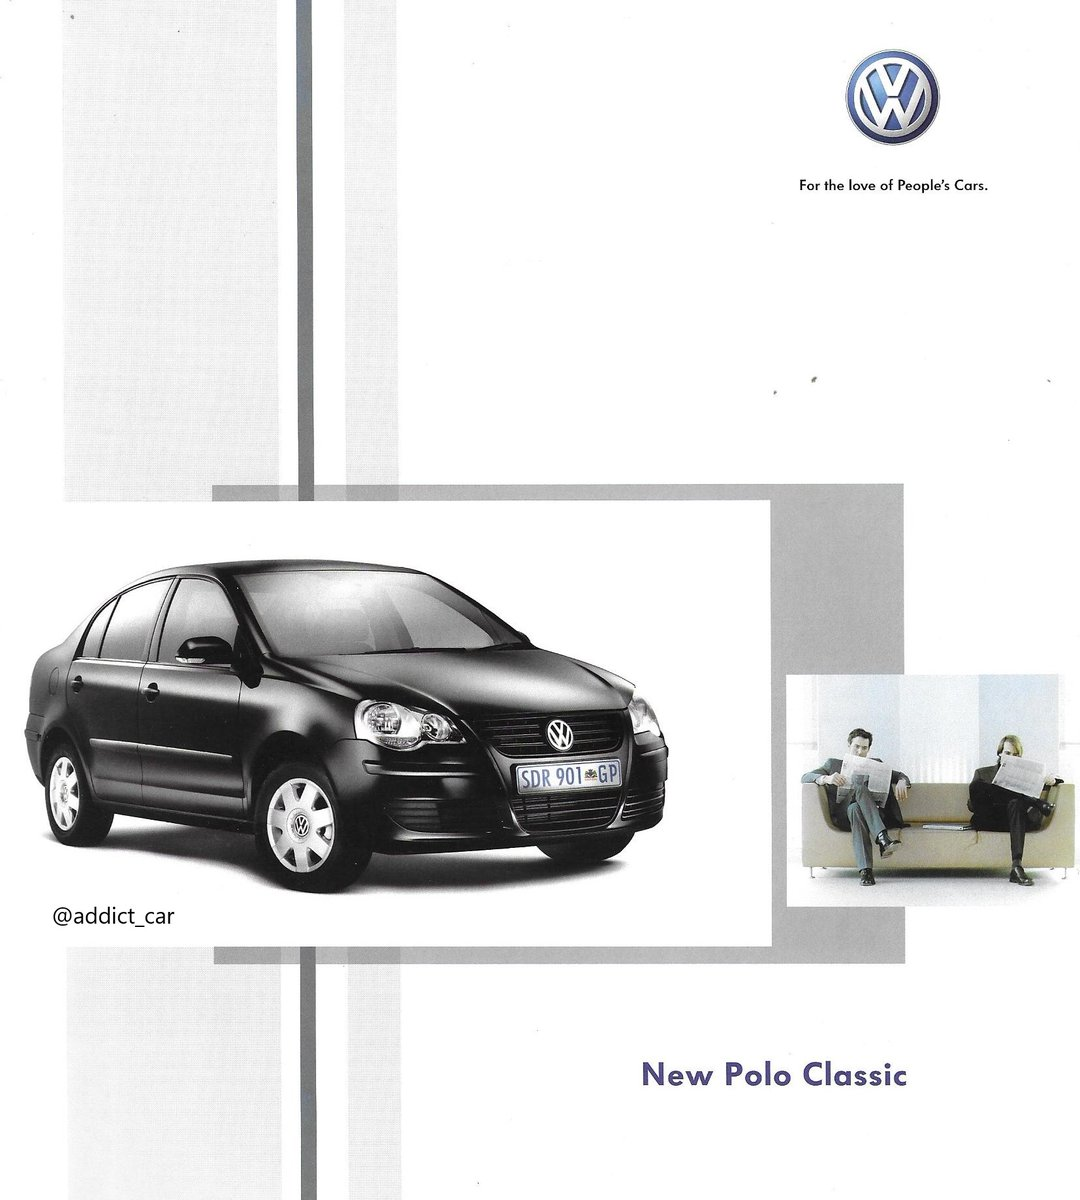 Carbrochureaddict On Twitter Hatchback Based Four Door Saloons Have An Enduring Popularity In Many Parts Of The World The Vw Polo Classic In This 2005 South African Brochure Was A Locally Built Booted Version Of